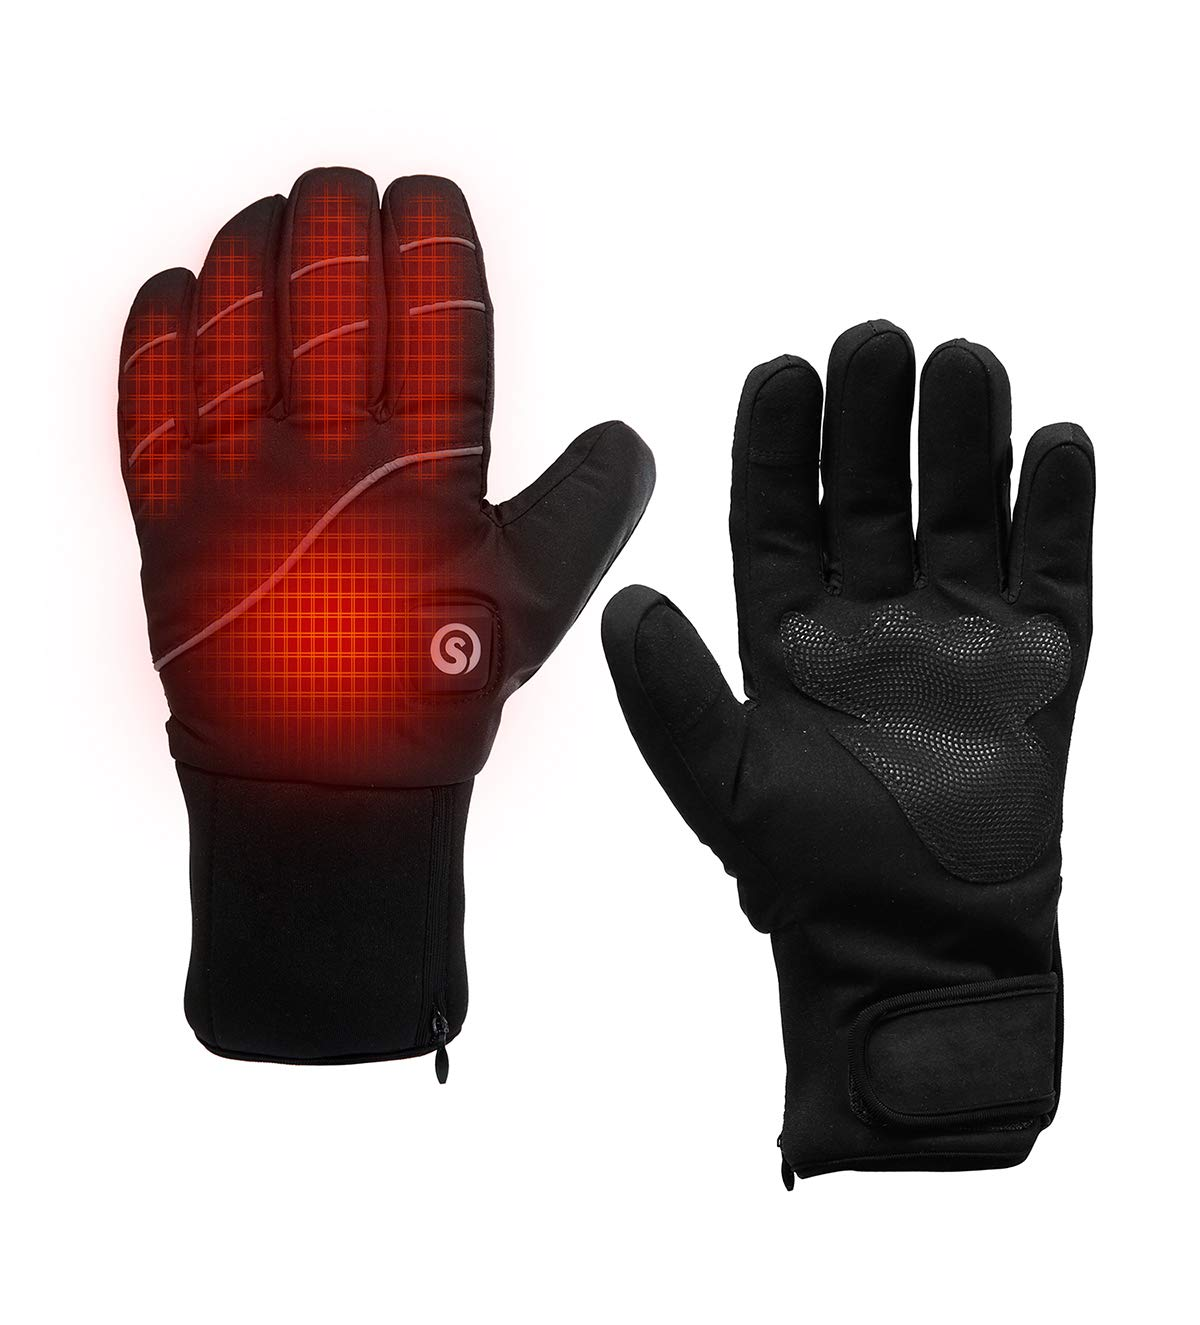 day wolf Heated Gloves Men Women with Rechargeable Battery 7.4V 2200MAH for Winter Sport Motorcyle Biking Cycling Ski Hunting Fishing Snow Heated Mitten Gloves Arthritis Hand Warmer (Black, 3XL) by day wolf